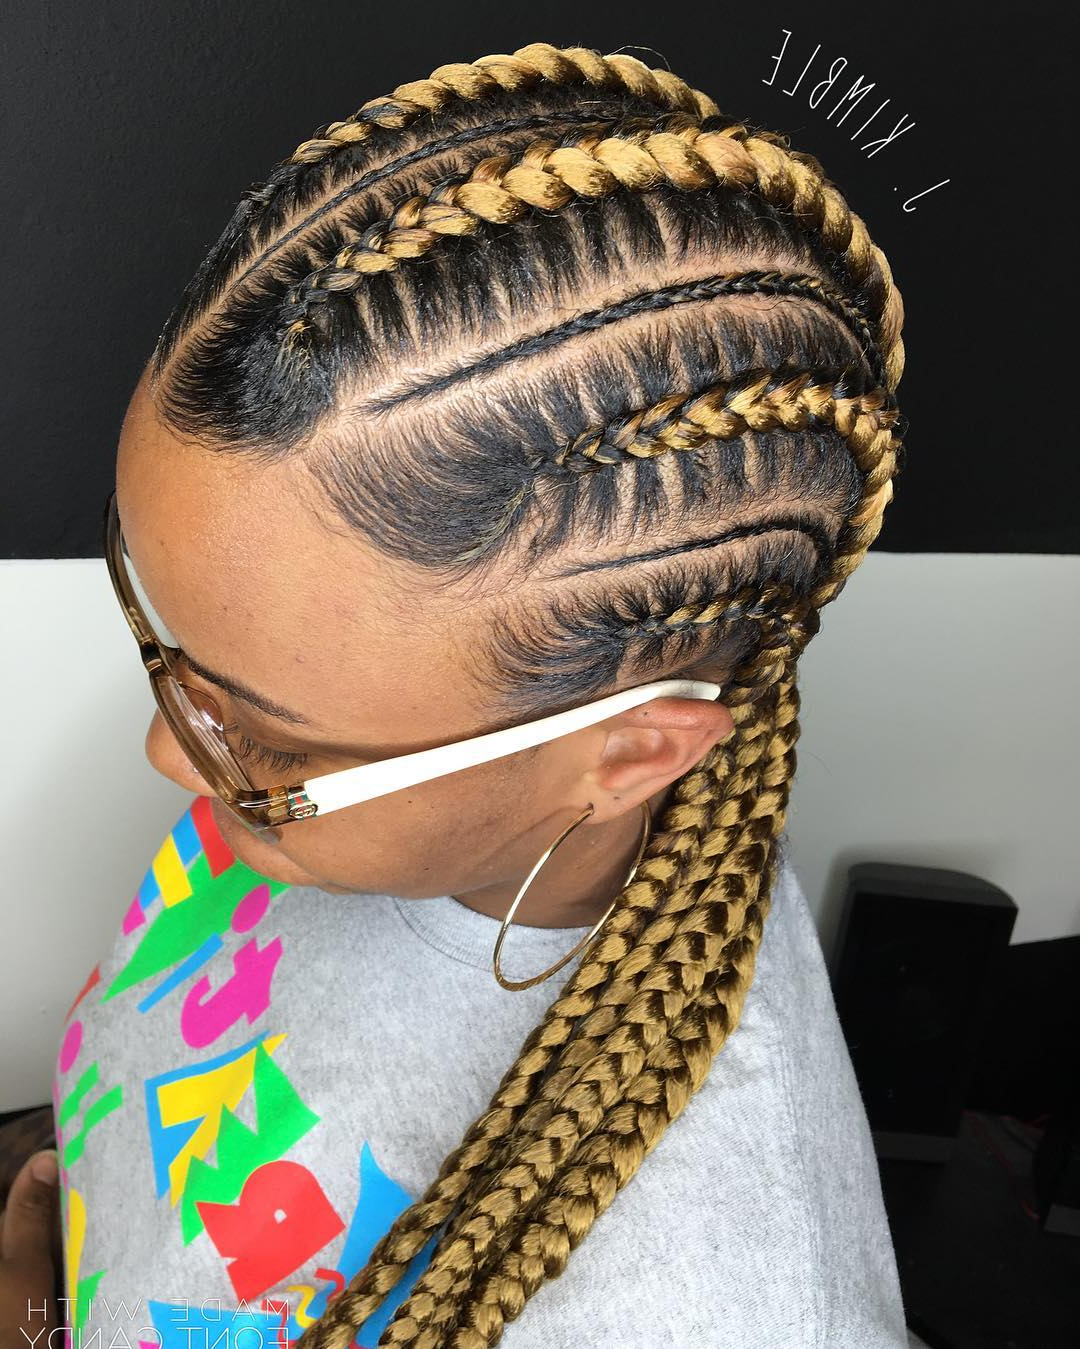 70 Best Black Braided Hairstyles That Turn Heads In 2019 For Newest Forward Braided Hairstyles With Hair Wrap (View 14 of 20)